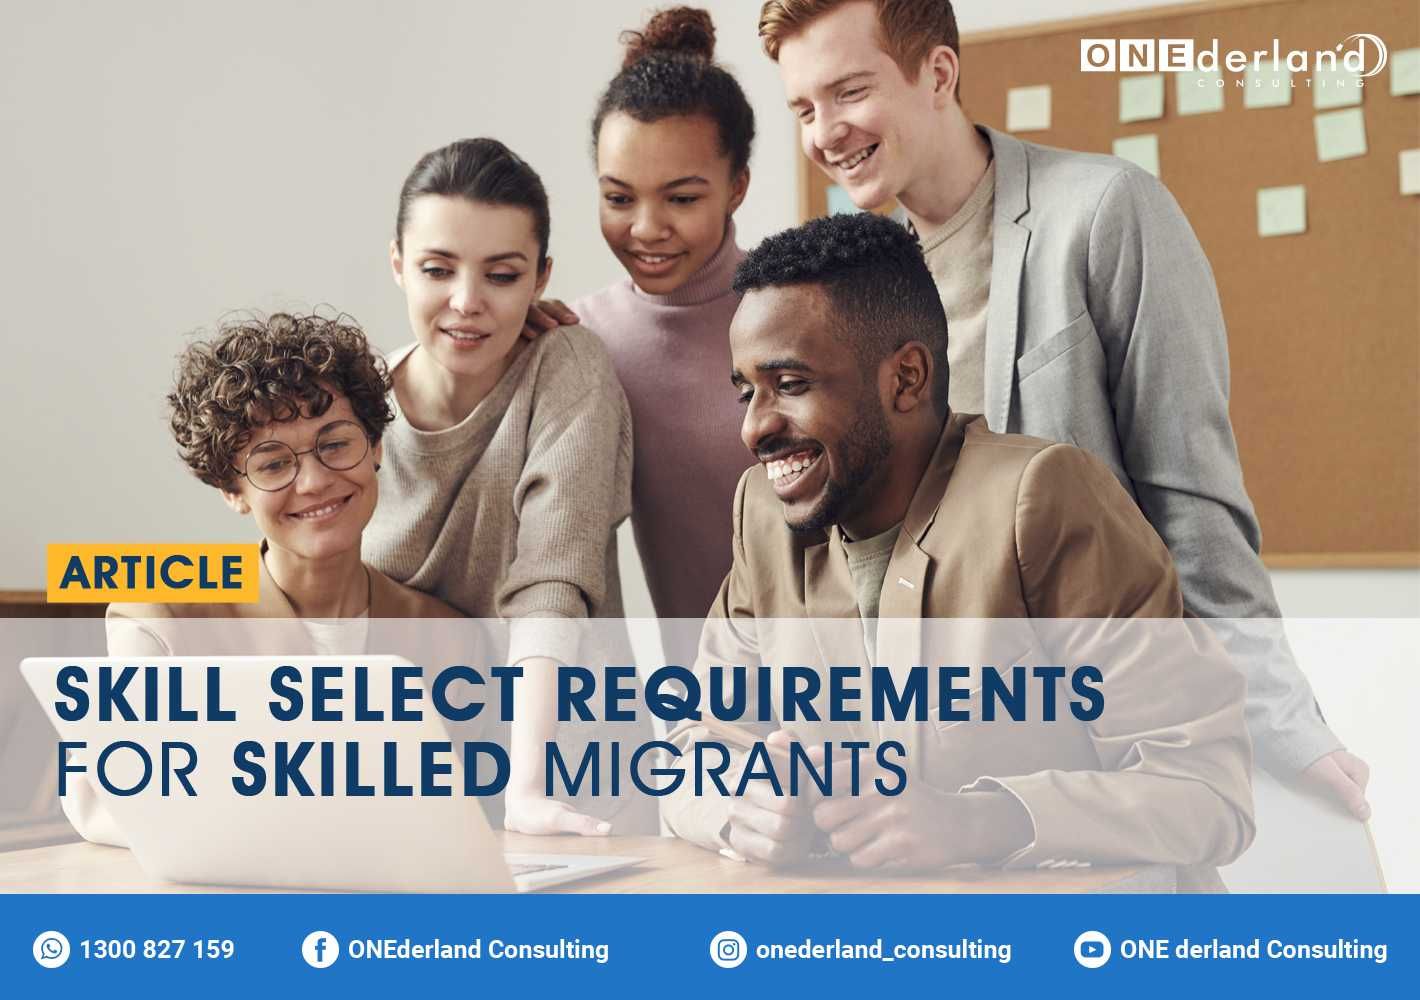 Skill Select Requirements for Skilled Migrants